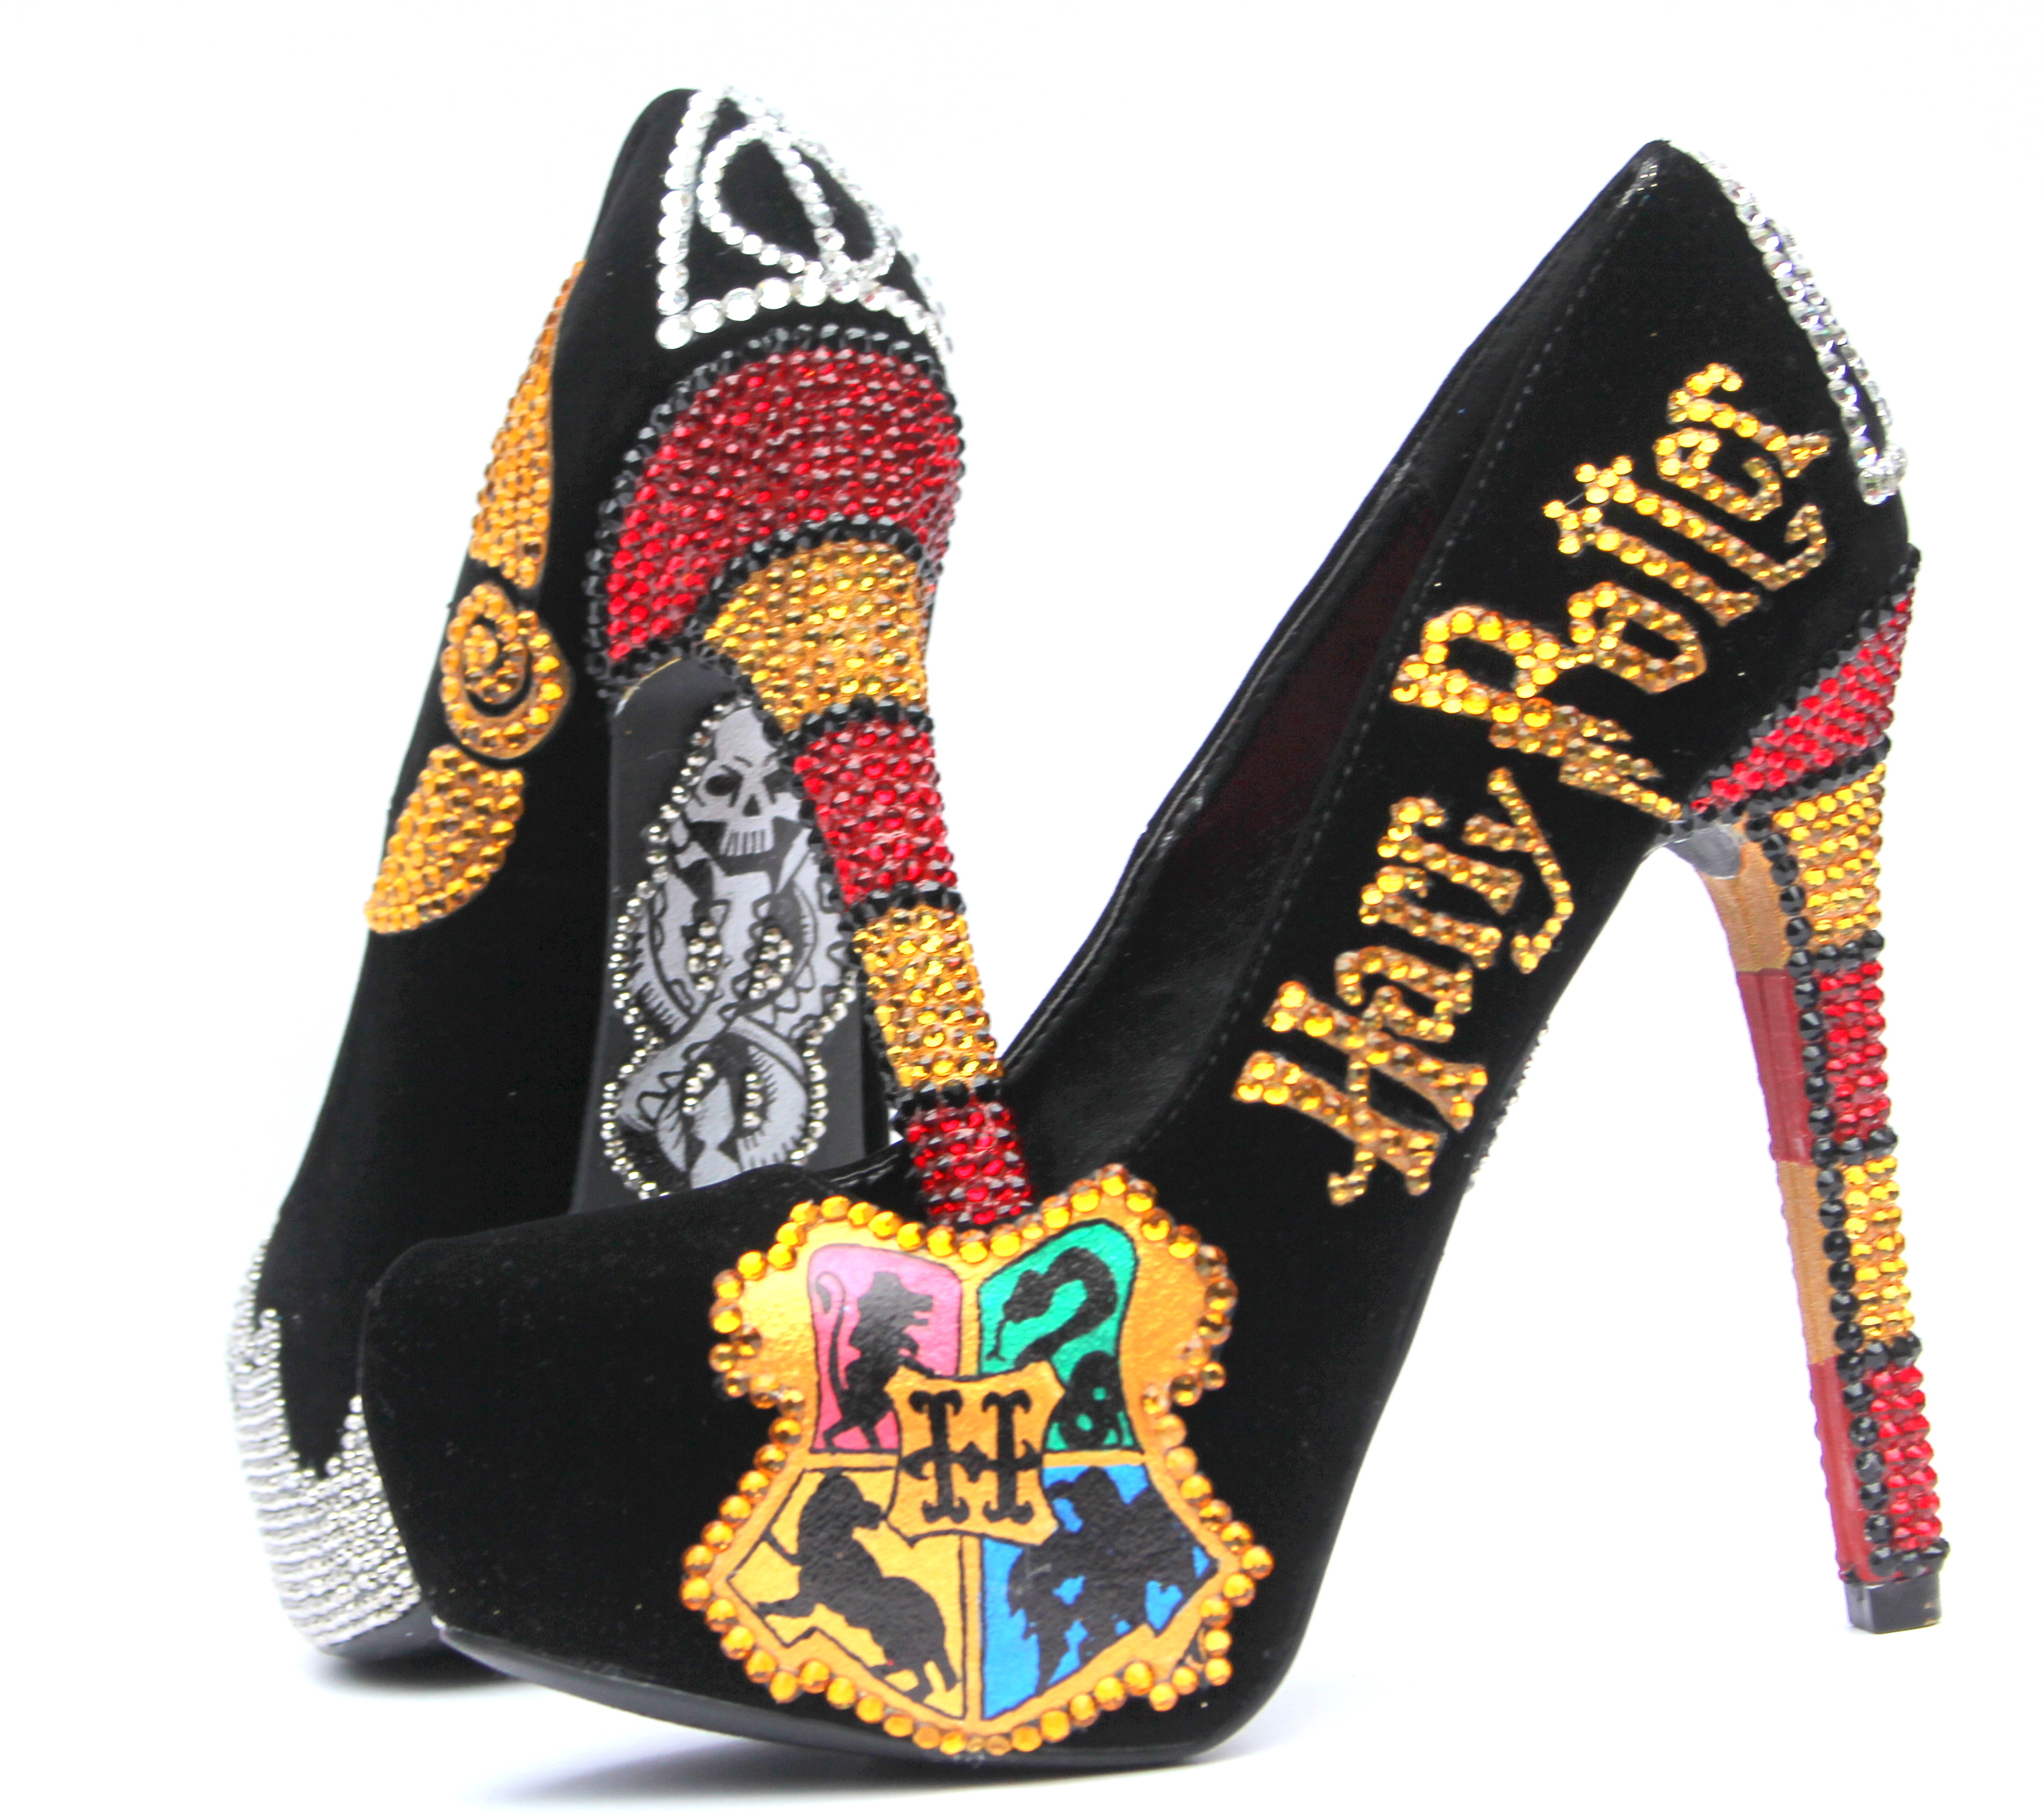 Harry Potter Heels Hand Painted With Swarovski Crystals On